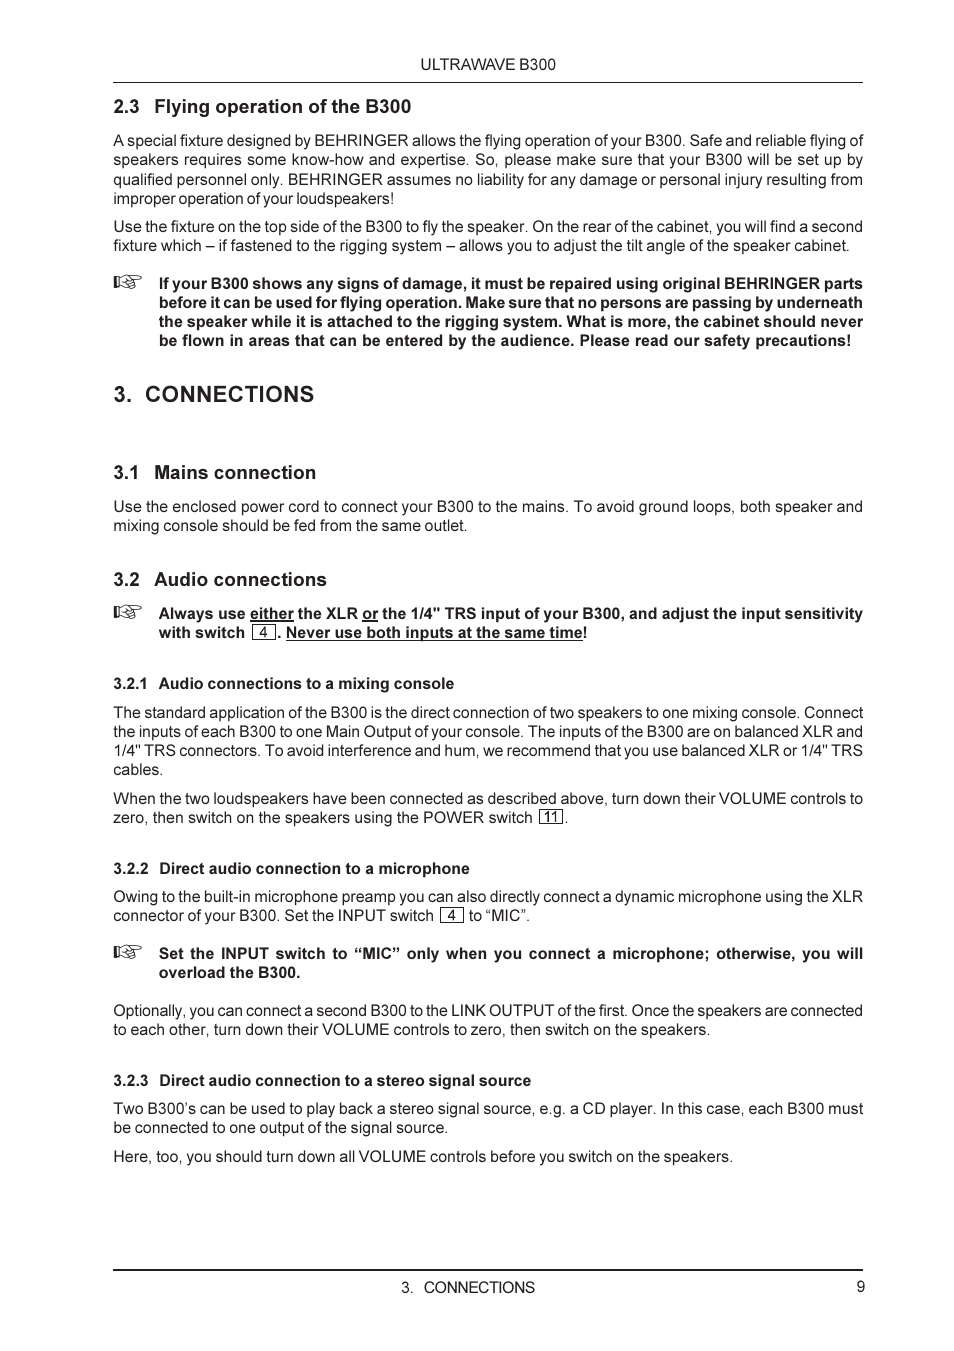 Connections | Behringer ULTRAWAVE B300 User Manual | Page 9 / 13